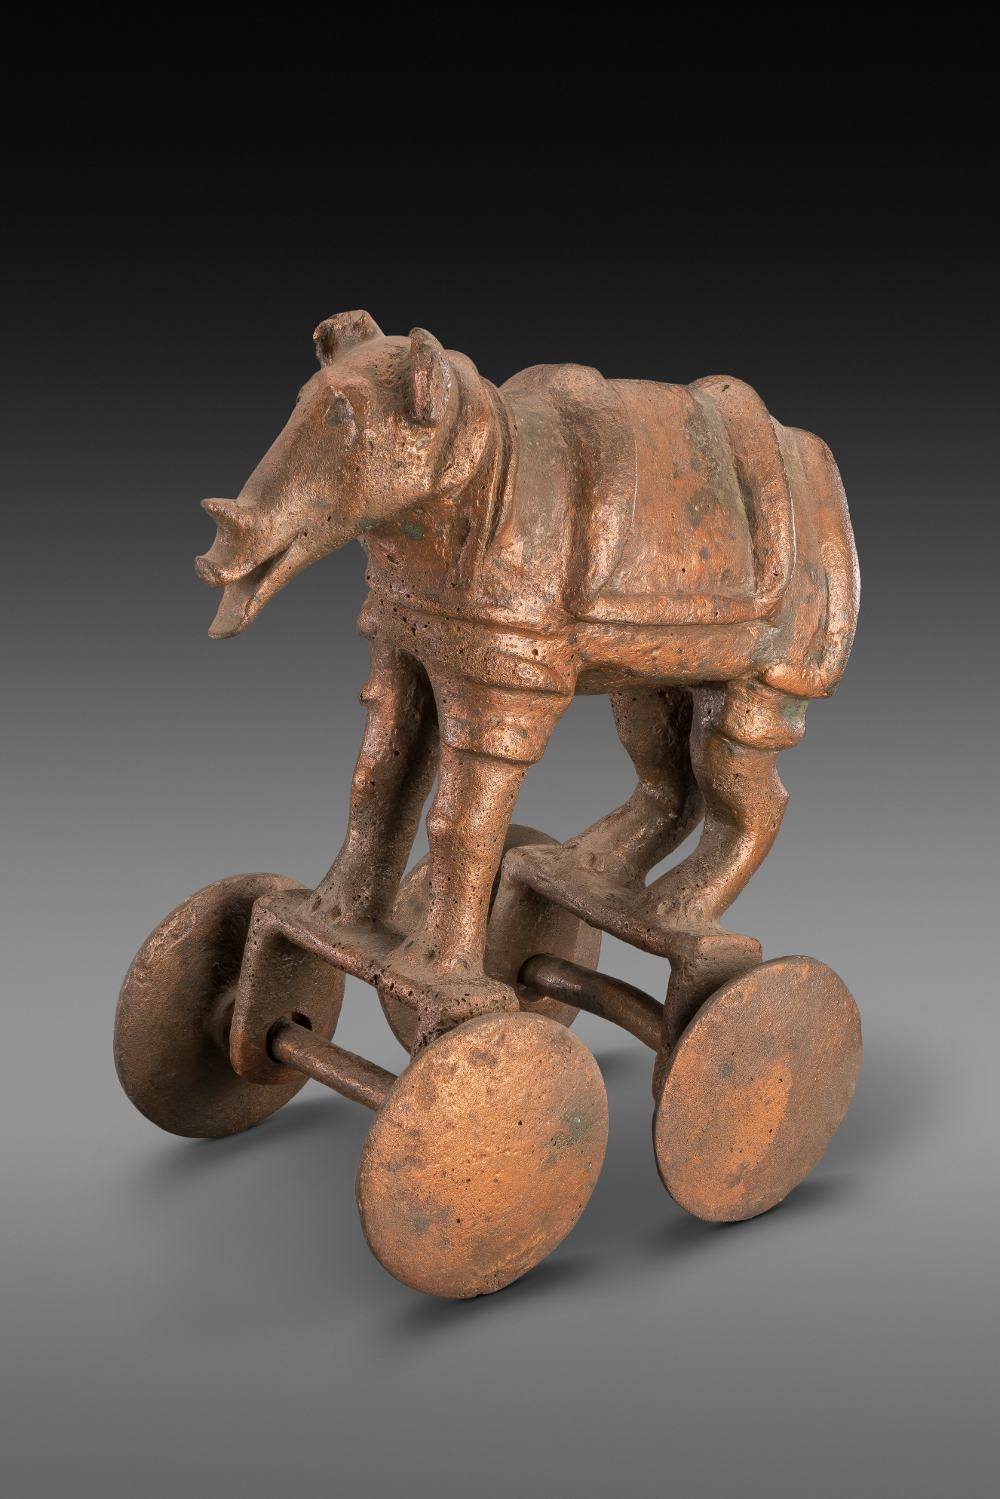 Rhinoceros - Bronze1500–1050 BCDaimabad, Maharashtra, IndiaNational Museum, New DelhiThis copper cart is one of a set of four, the others are modelled into an elephant, buffalo and a chariot drawn by two bullocks. These carts are too small to be visible to the public in a procession and too heavy to be used as toys. They are most likely expensive grave goods or ceremonial replicas. This rhinoceros bears some similarities with depictions on Harappan seals. Yet no major Harappan-style cities have been found in Maharashtra.